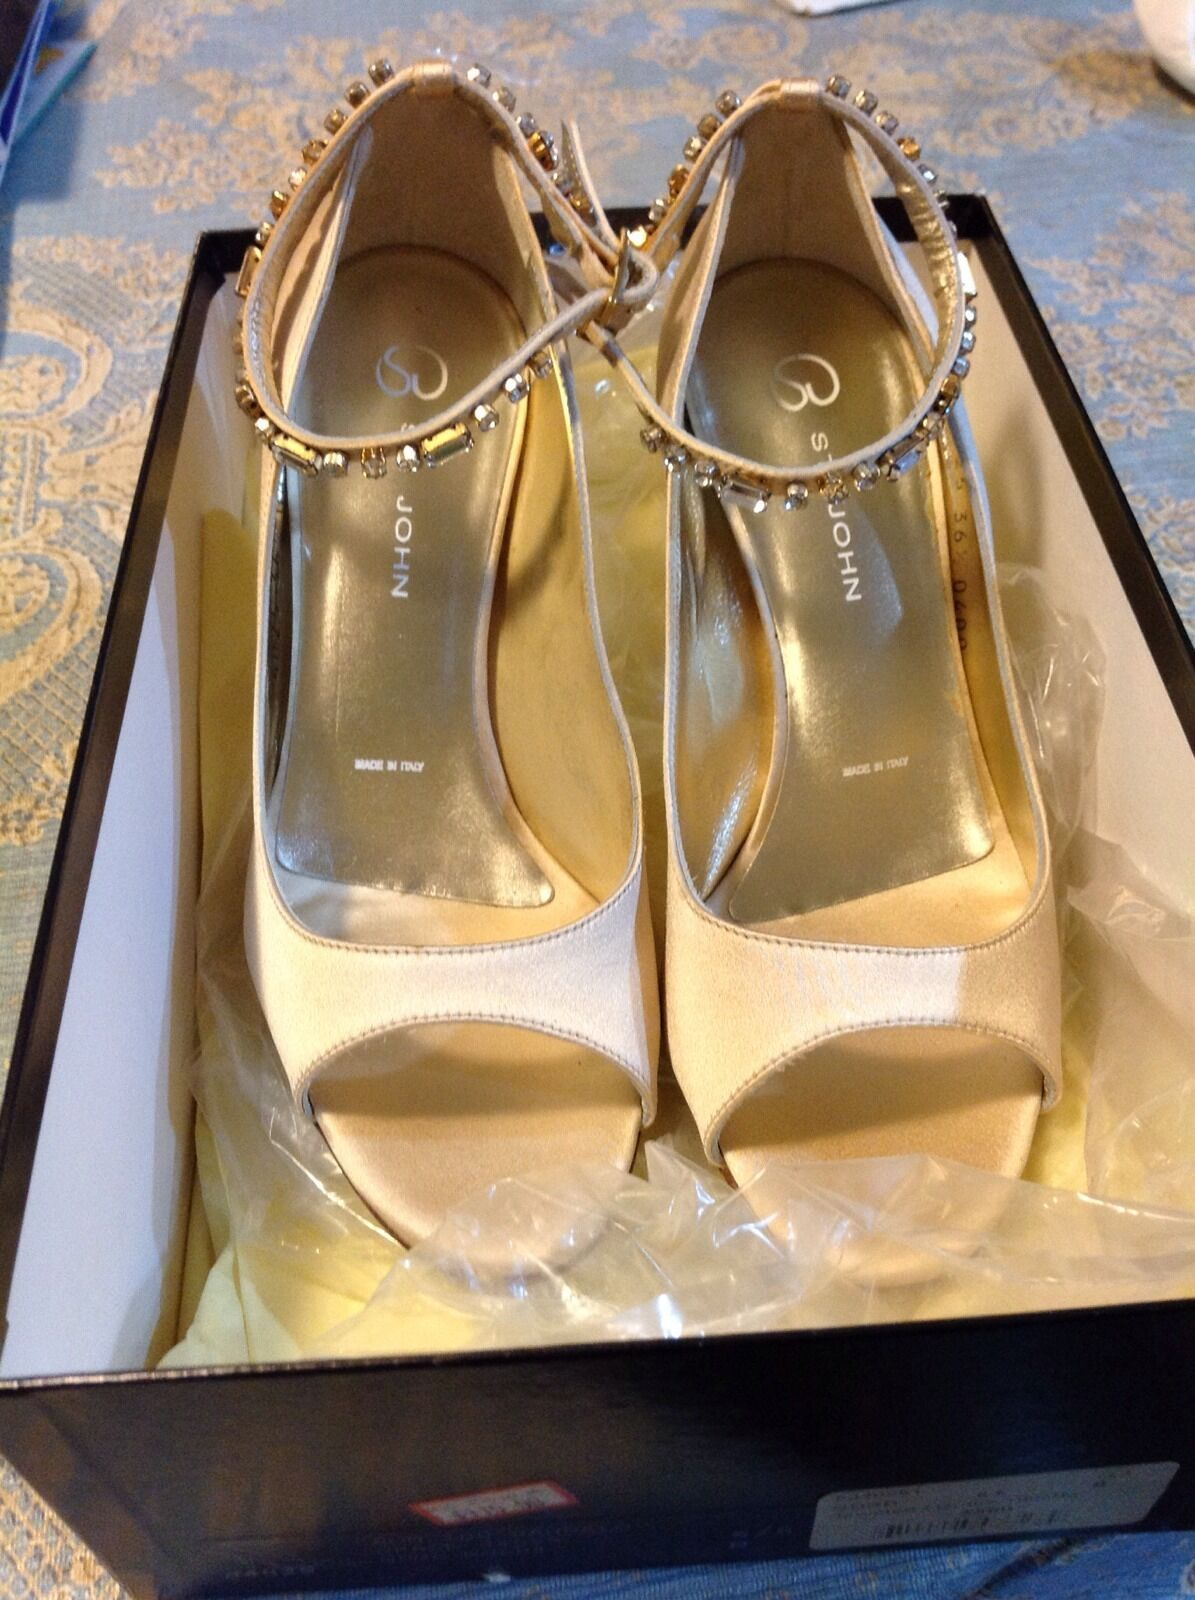 ST. JOHN COUTURE SIZE 6.5 BEIGE SATIN EVENING SHOE WITH CRYSTAL ACCENT STRAP NEW